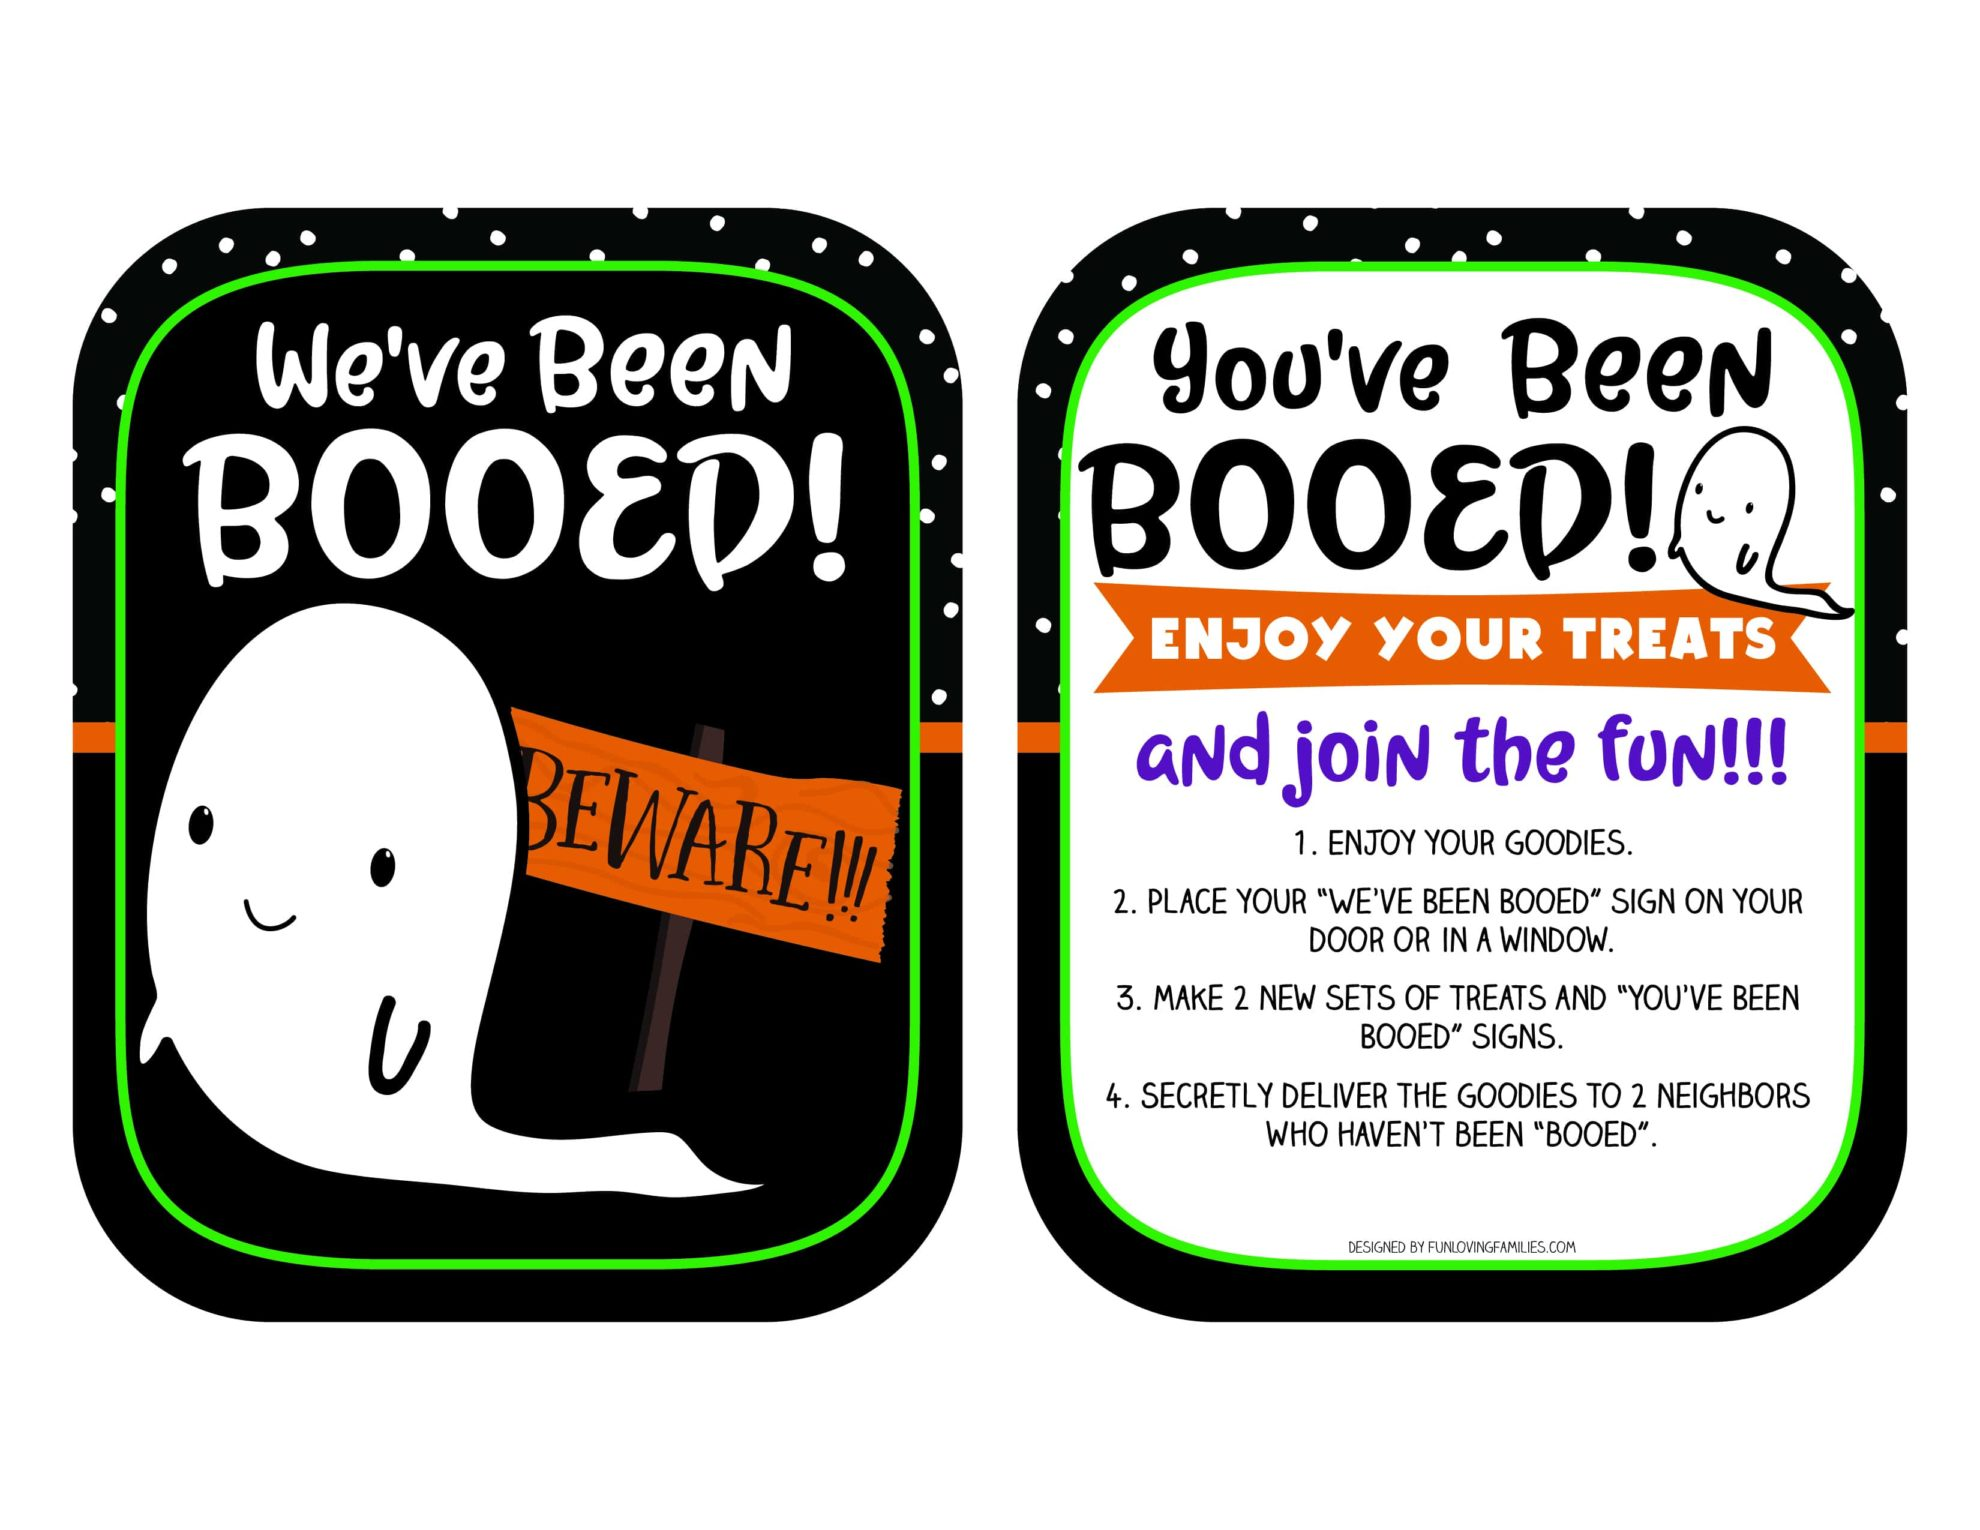 Print these new You've been booed and We've been booed signs for some Halloween fun around the neighborhood. Click through to learn how to play the game.